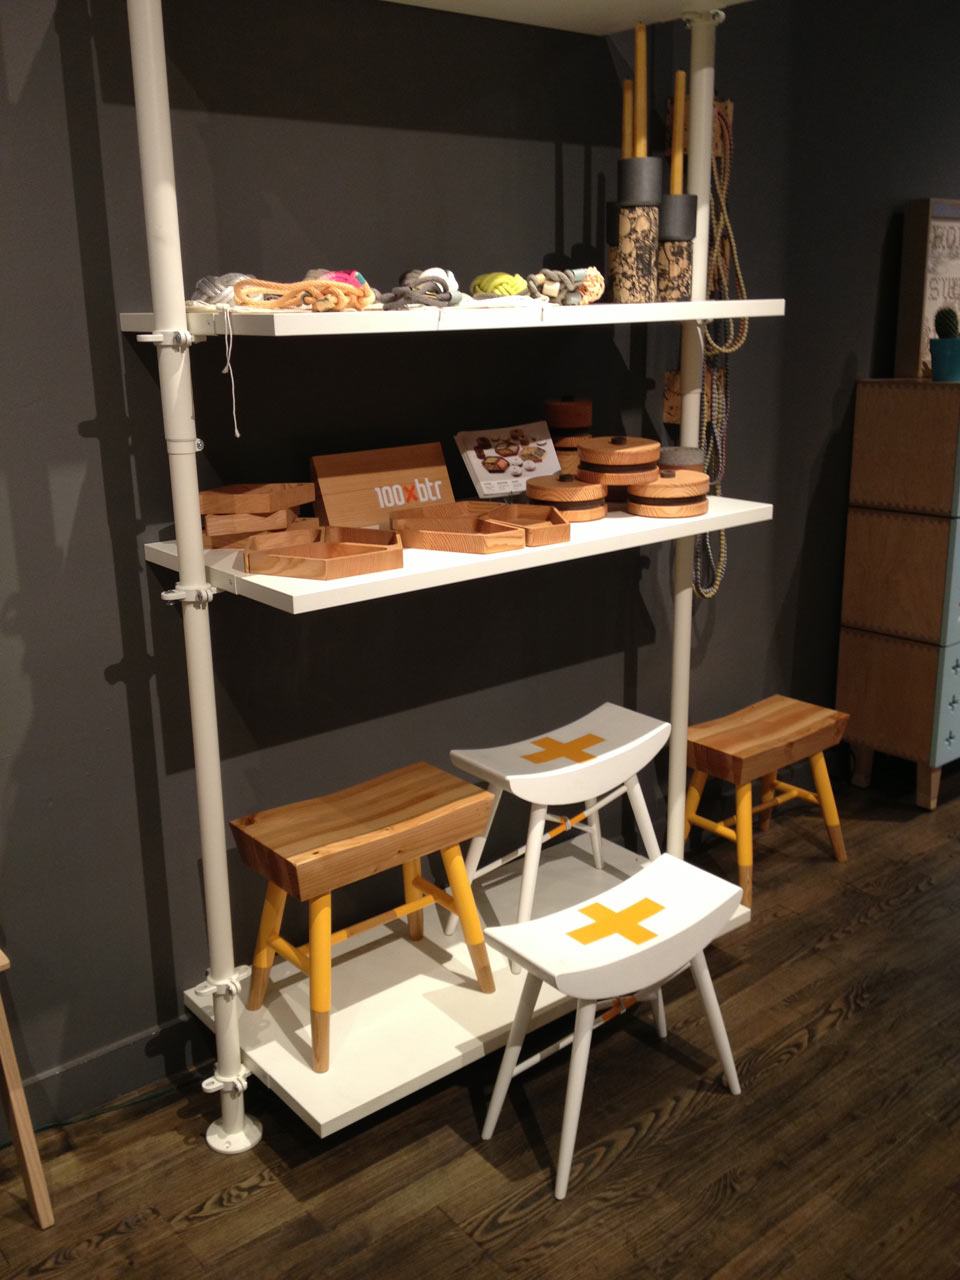 bbh-design-milk-east-meet-west-shelving